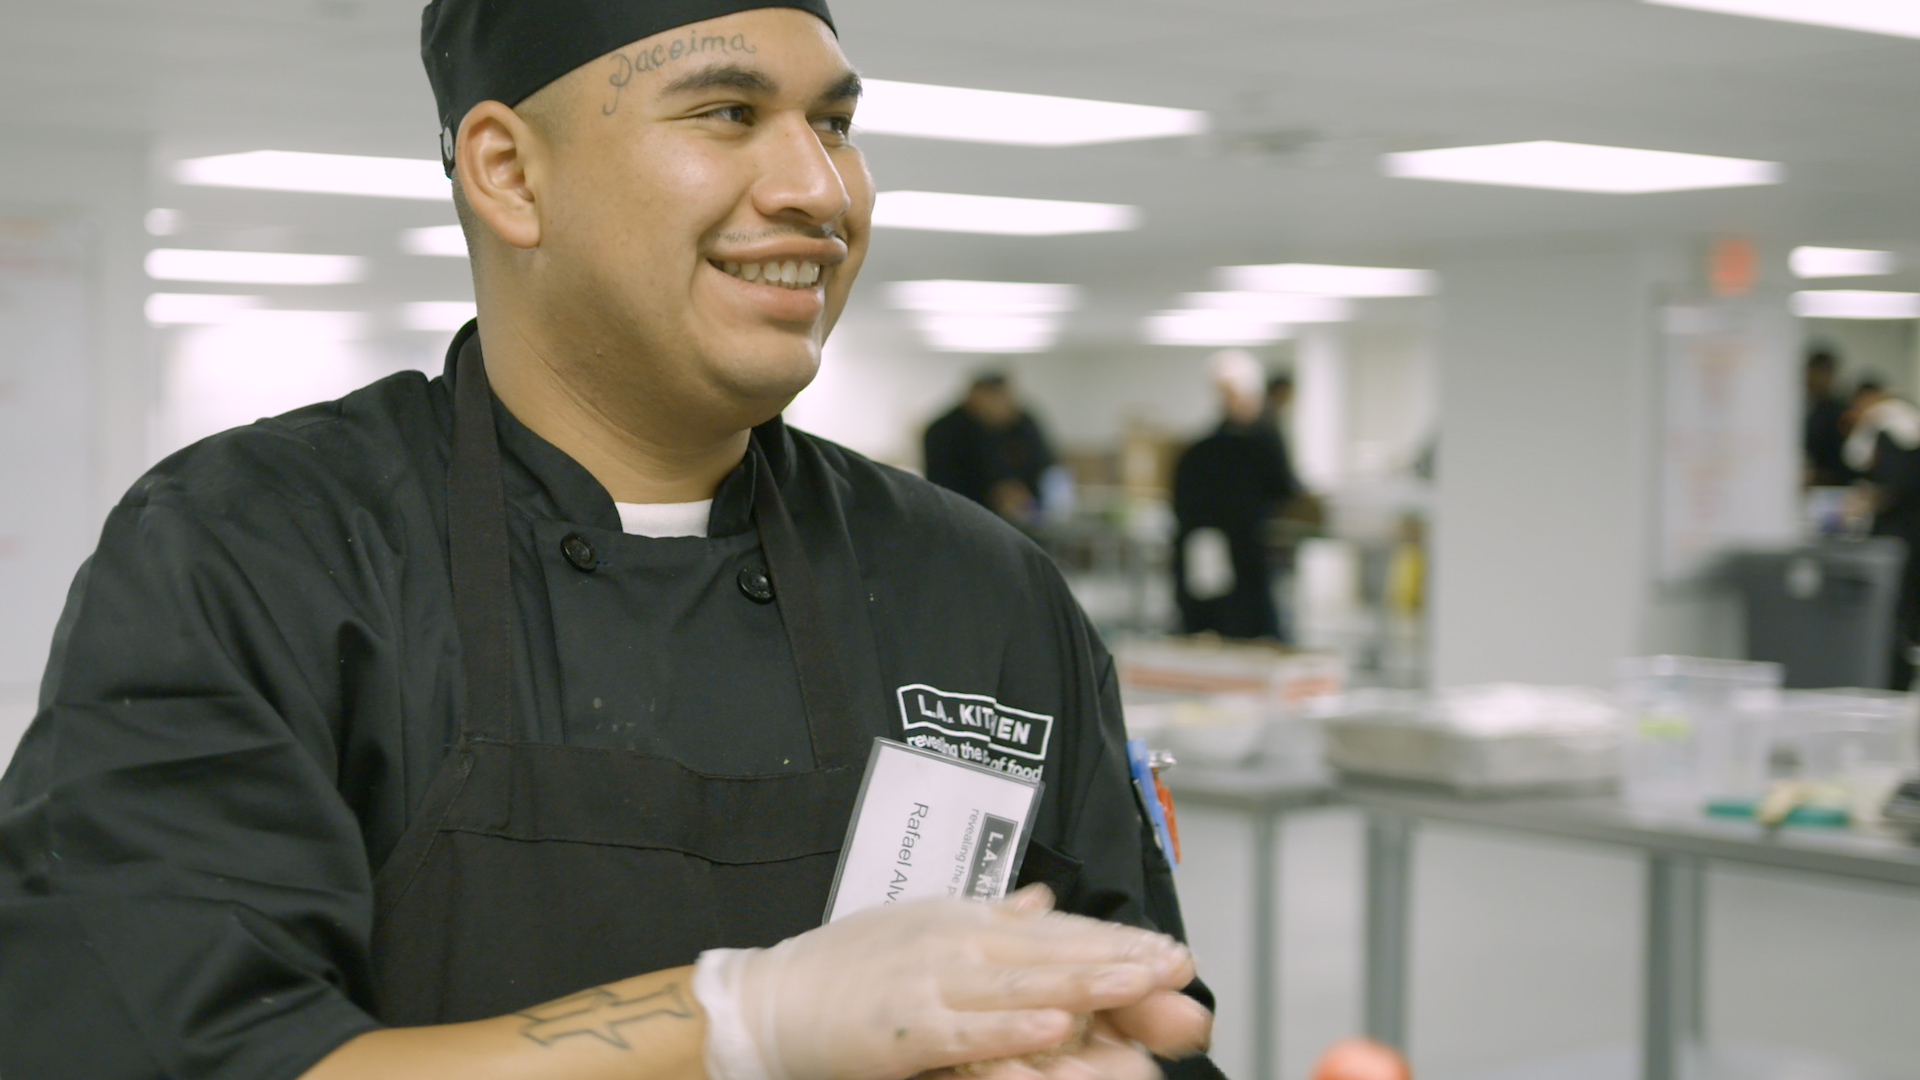 an LA Kitchen student smiling.